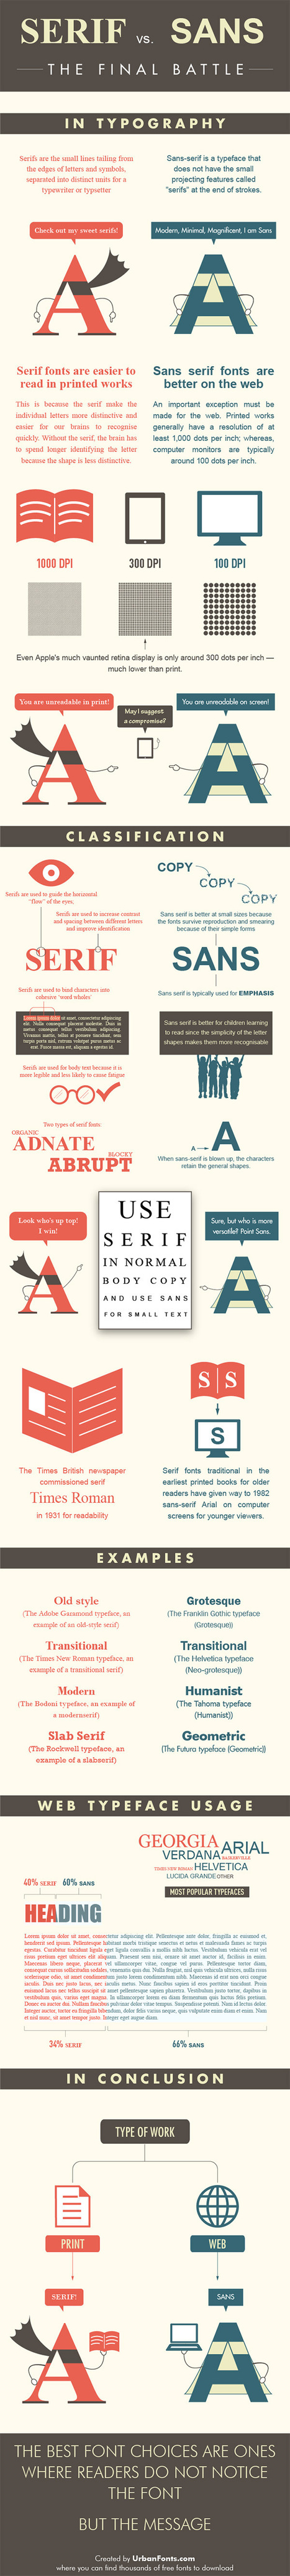 Serif vs Sans: The Final Battle In Typography [Infographic] | WebsiteDesign | Scoop.it